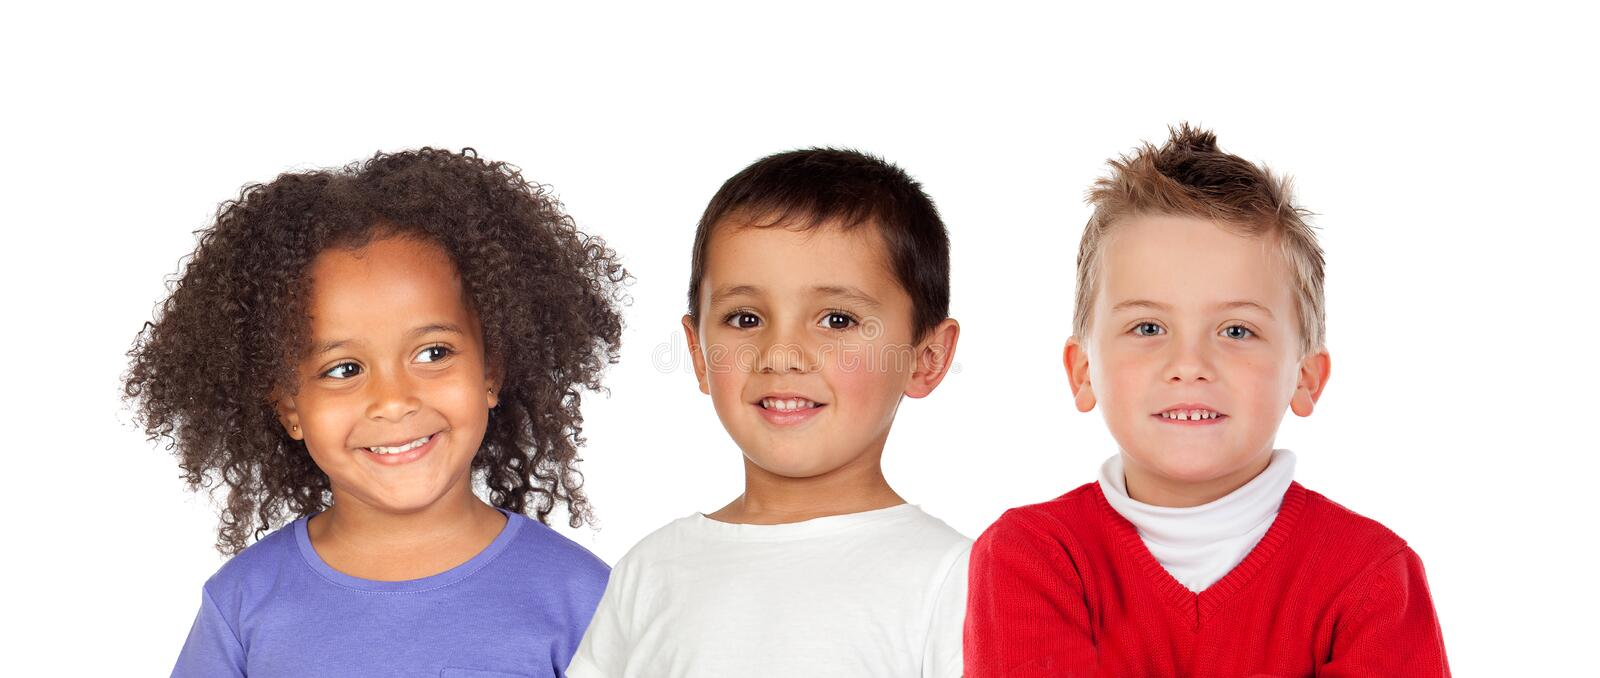 Many children royalty free stock images